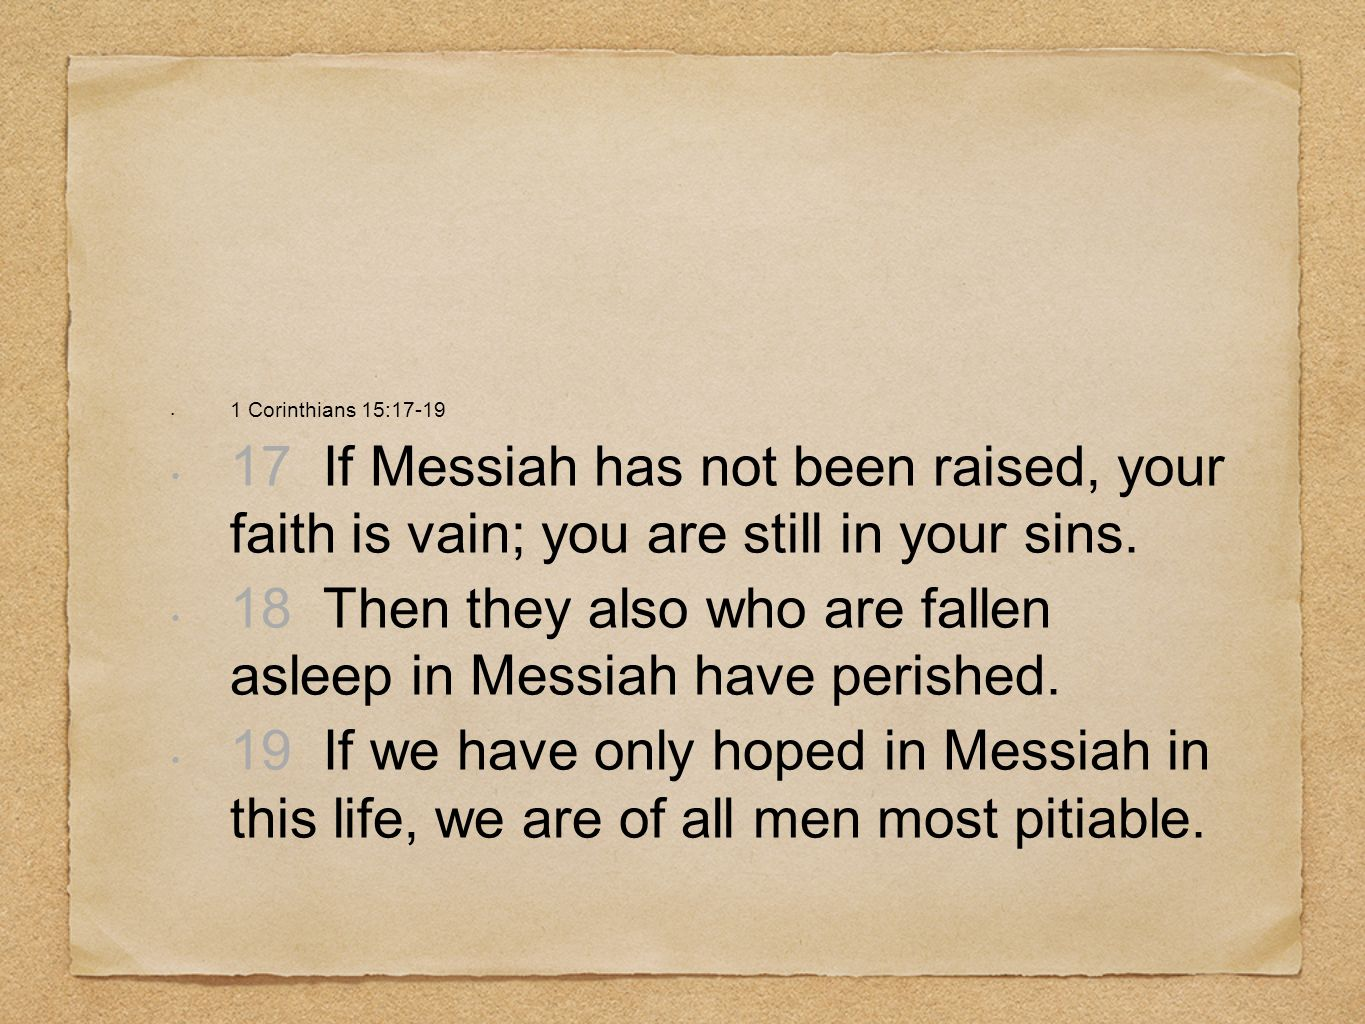 18 Then they also who are fallen asleep in Messiah have perished.